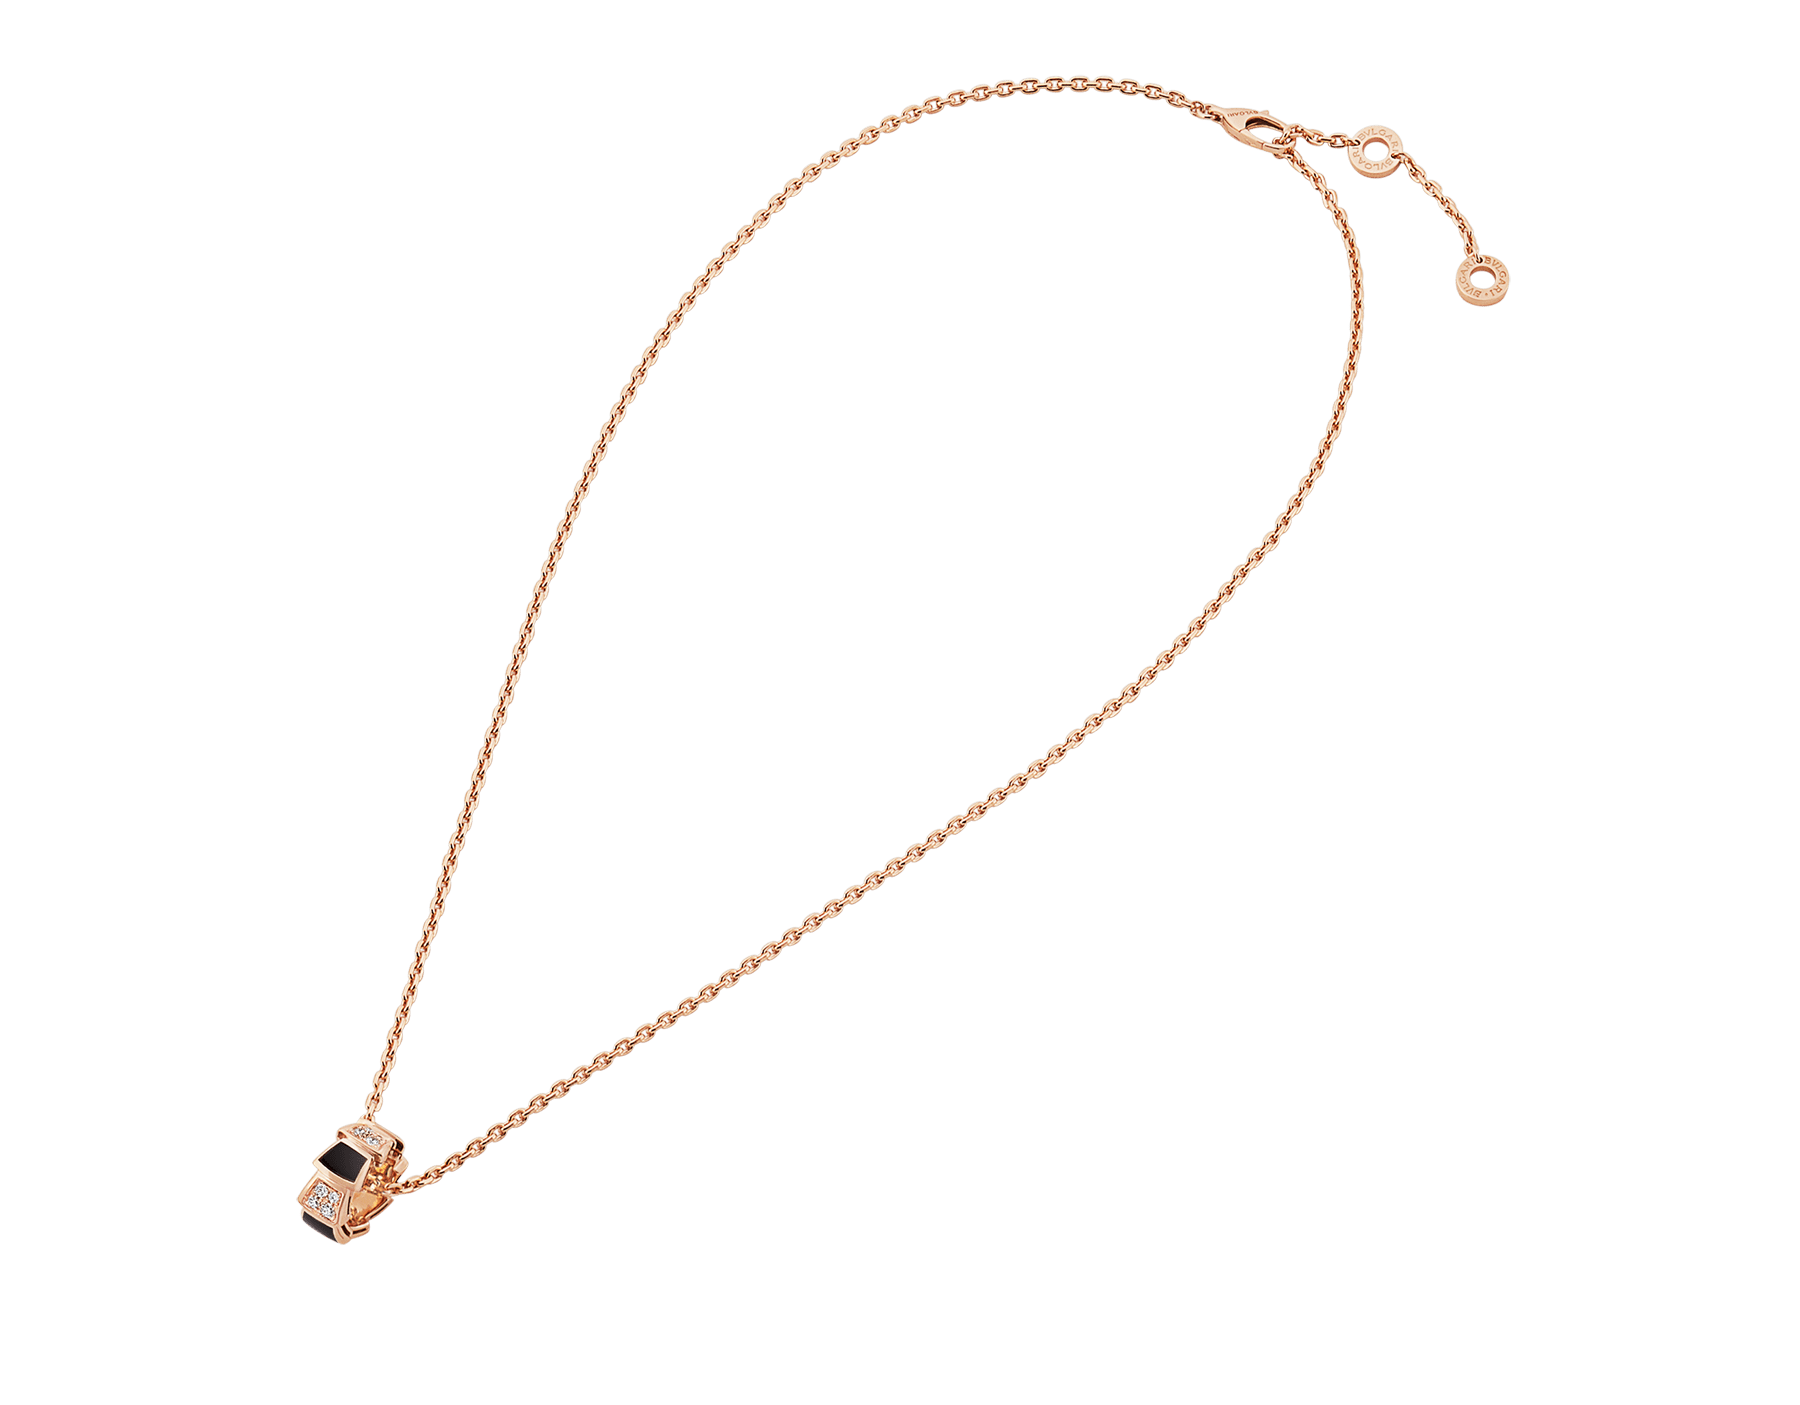 Serpenti Viper 18 kt rose gold necklace set with onyx elements and pavé diamonds on the pendant. 356554 image 2